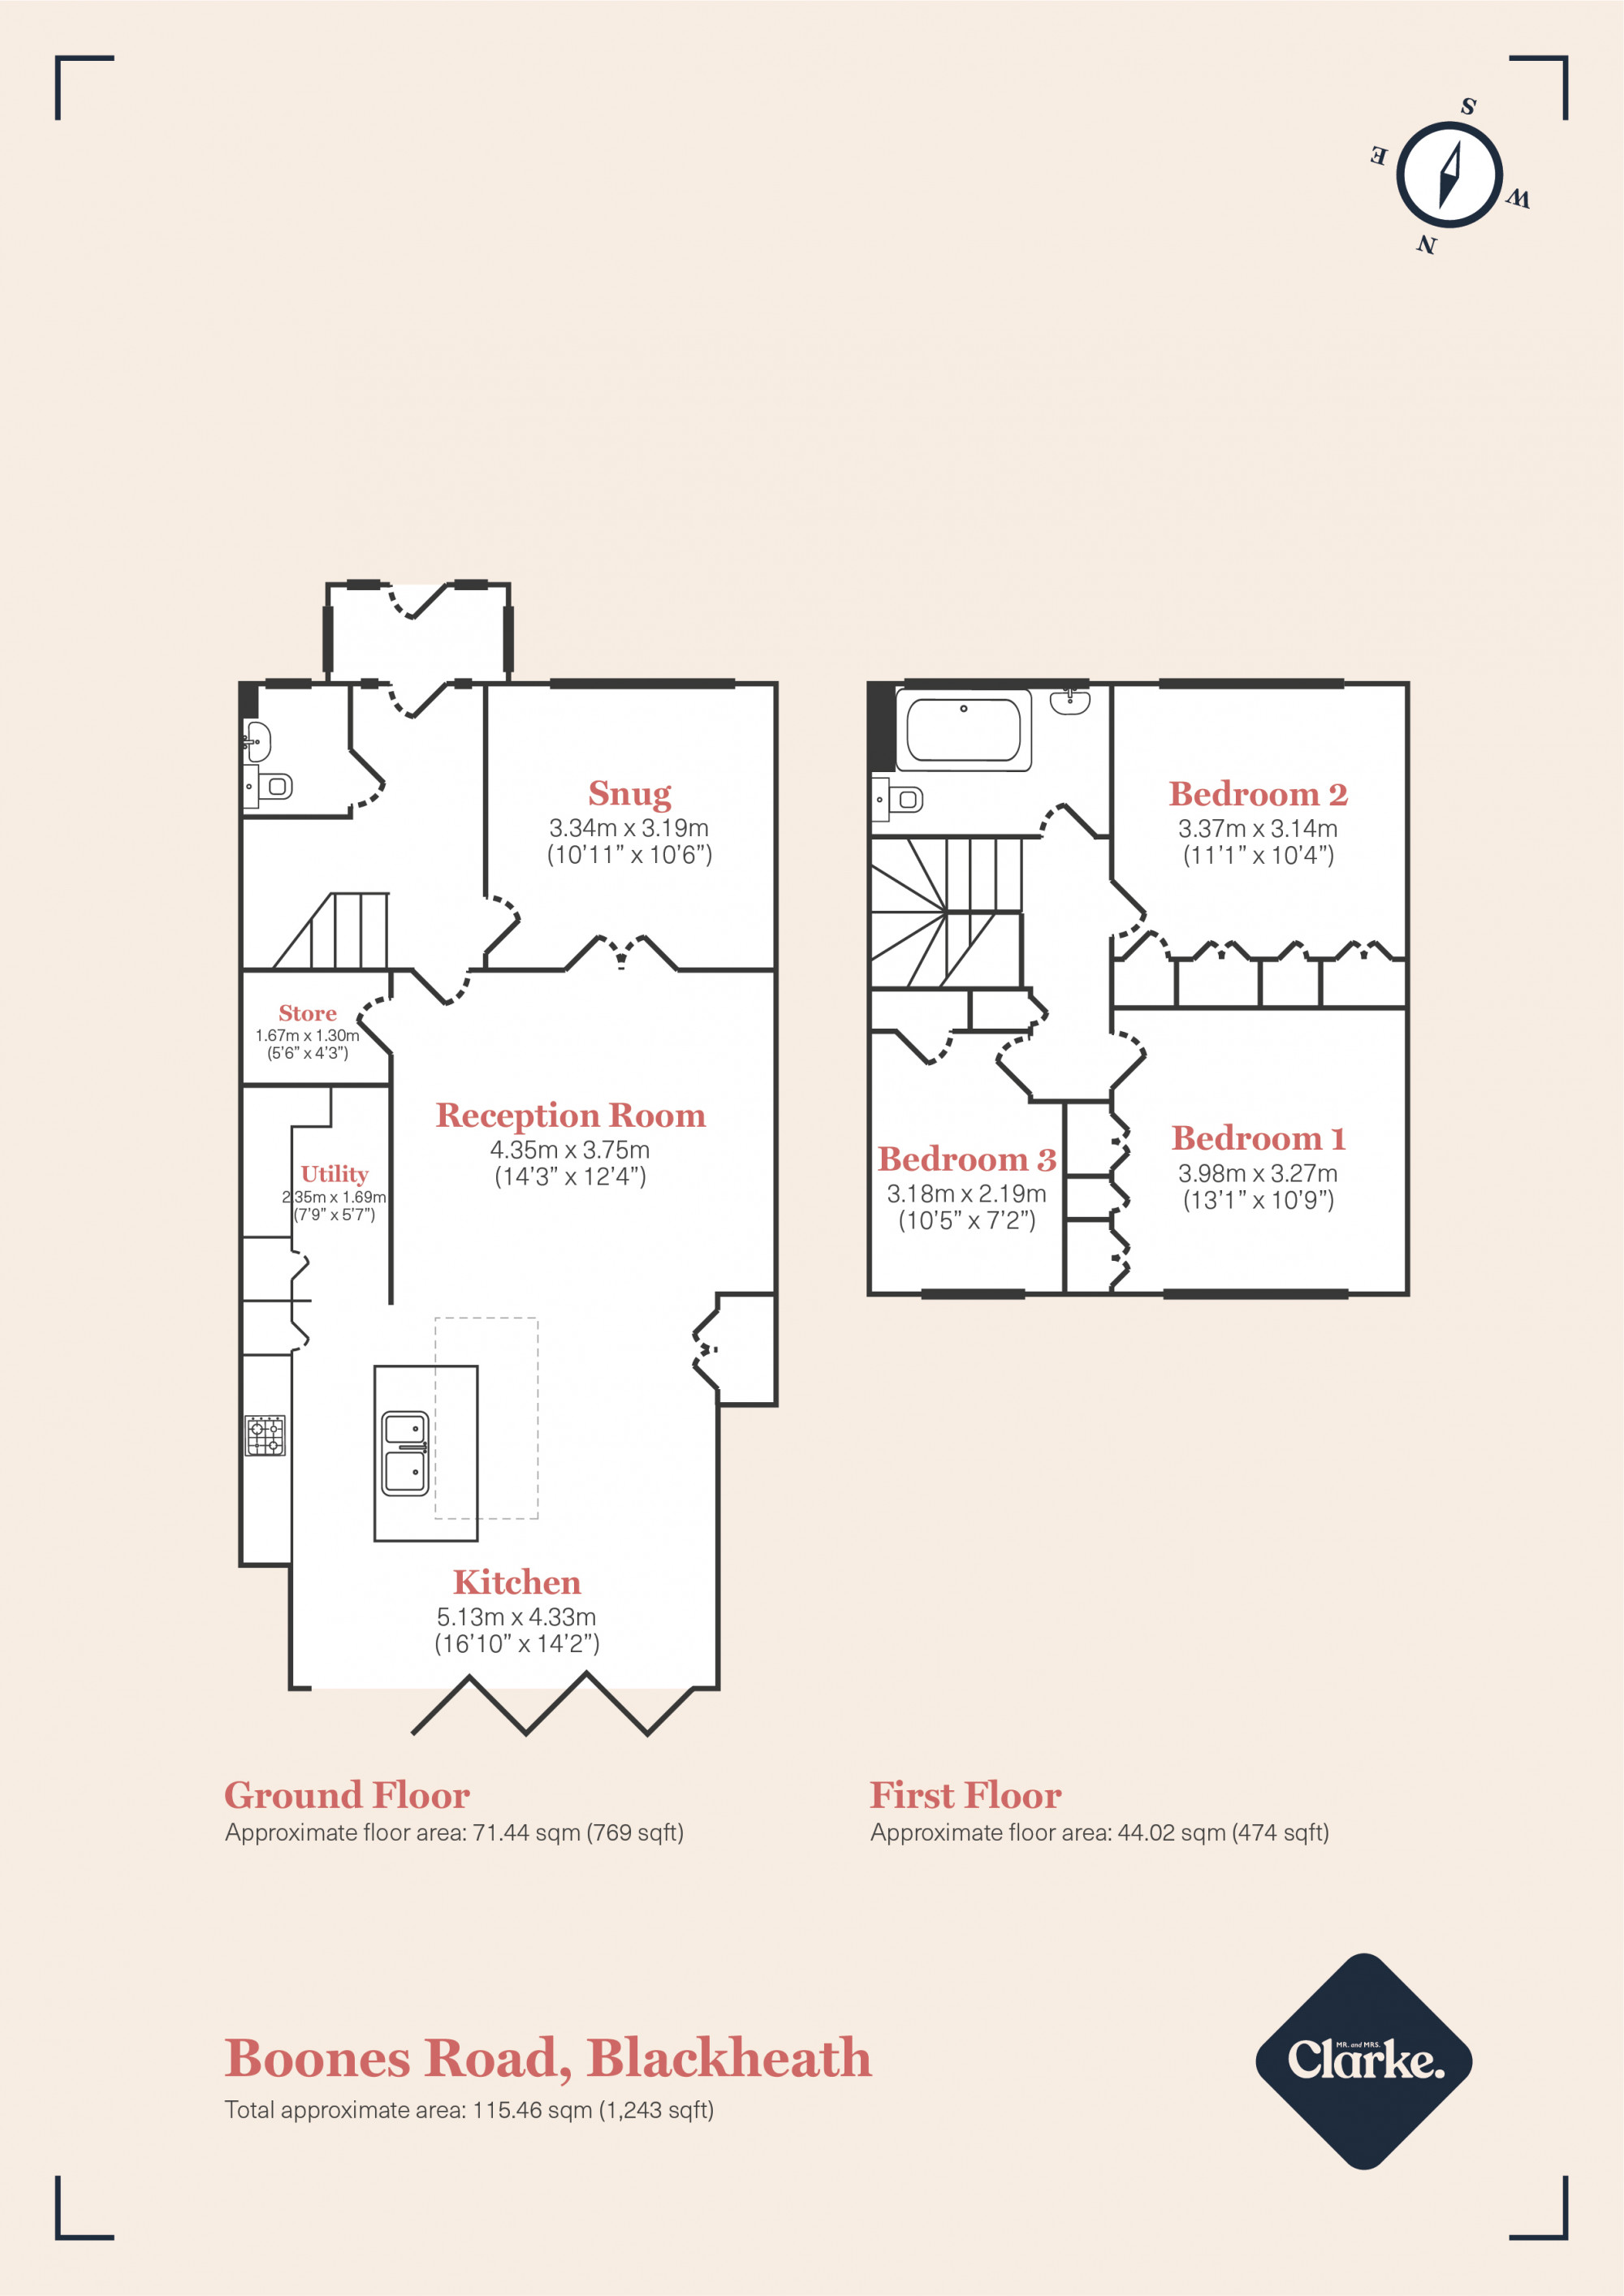 Boones Road, Blackheath. Floorplan.